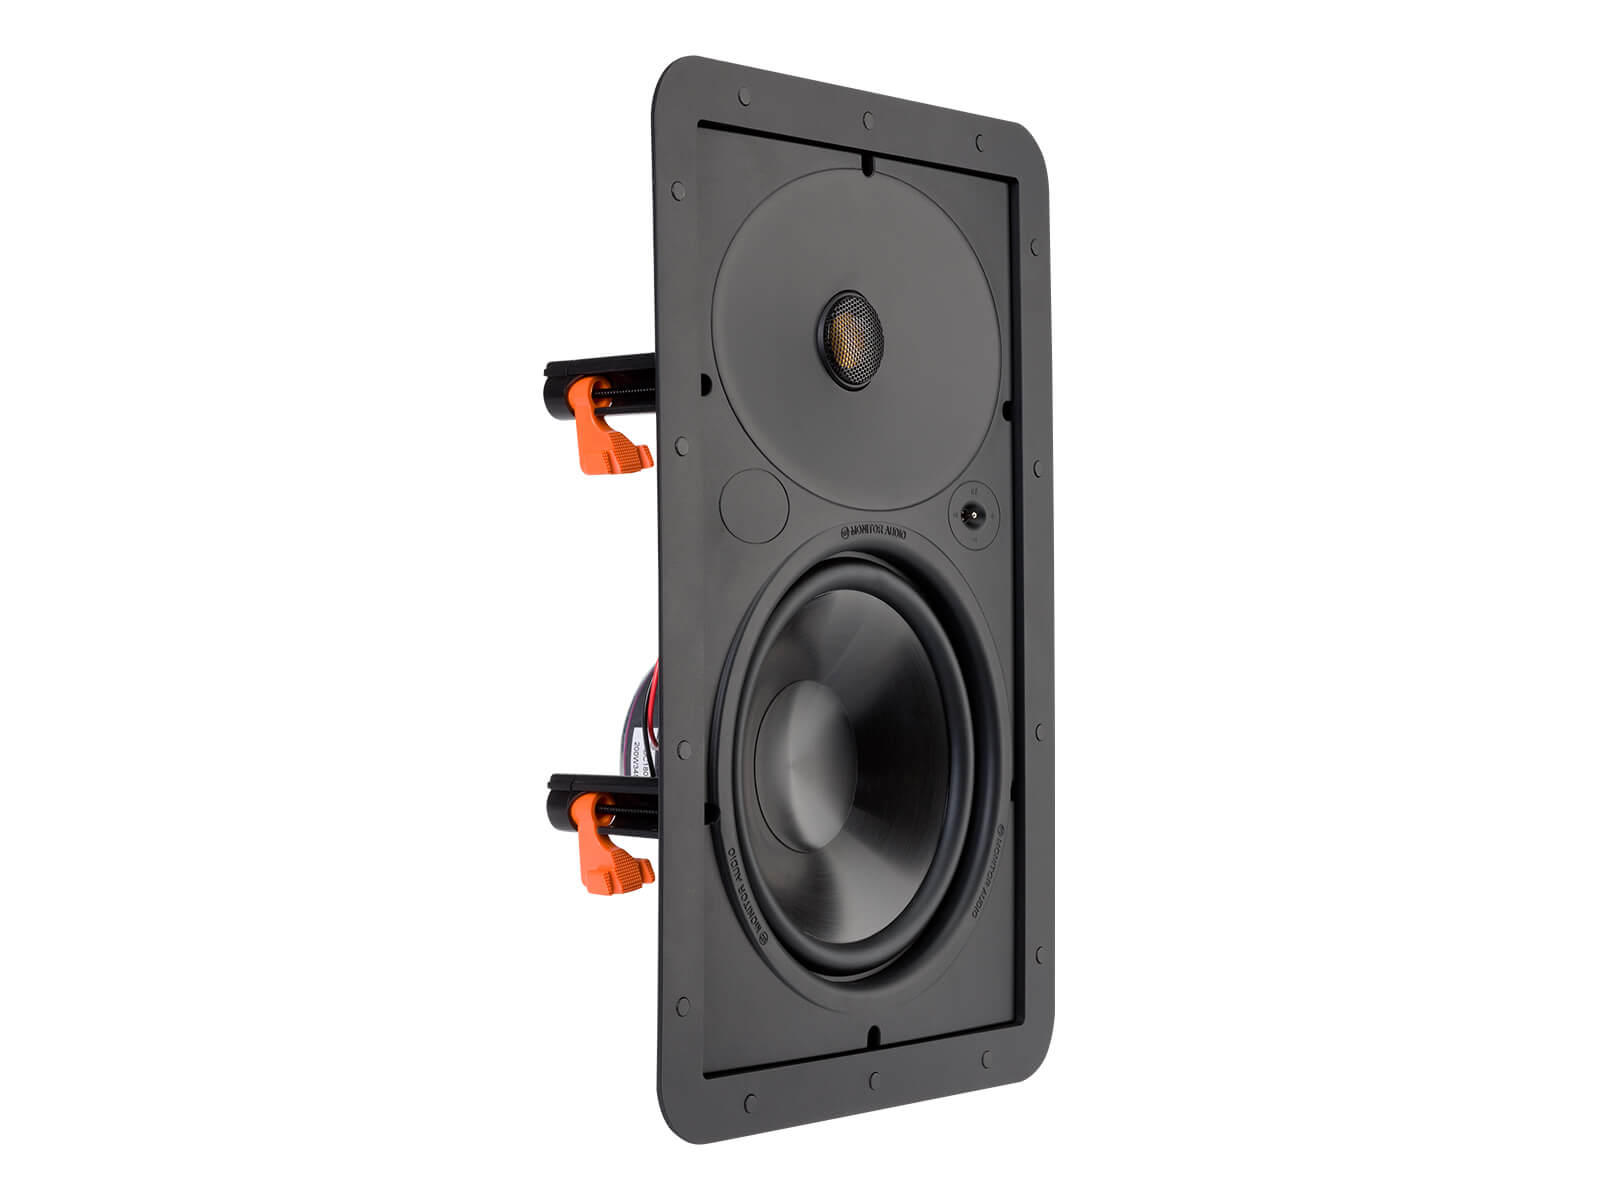 Core W180, front ISO, grille-less in-wall speakers.